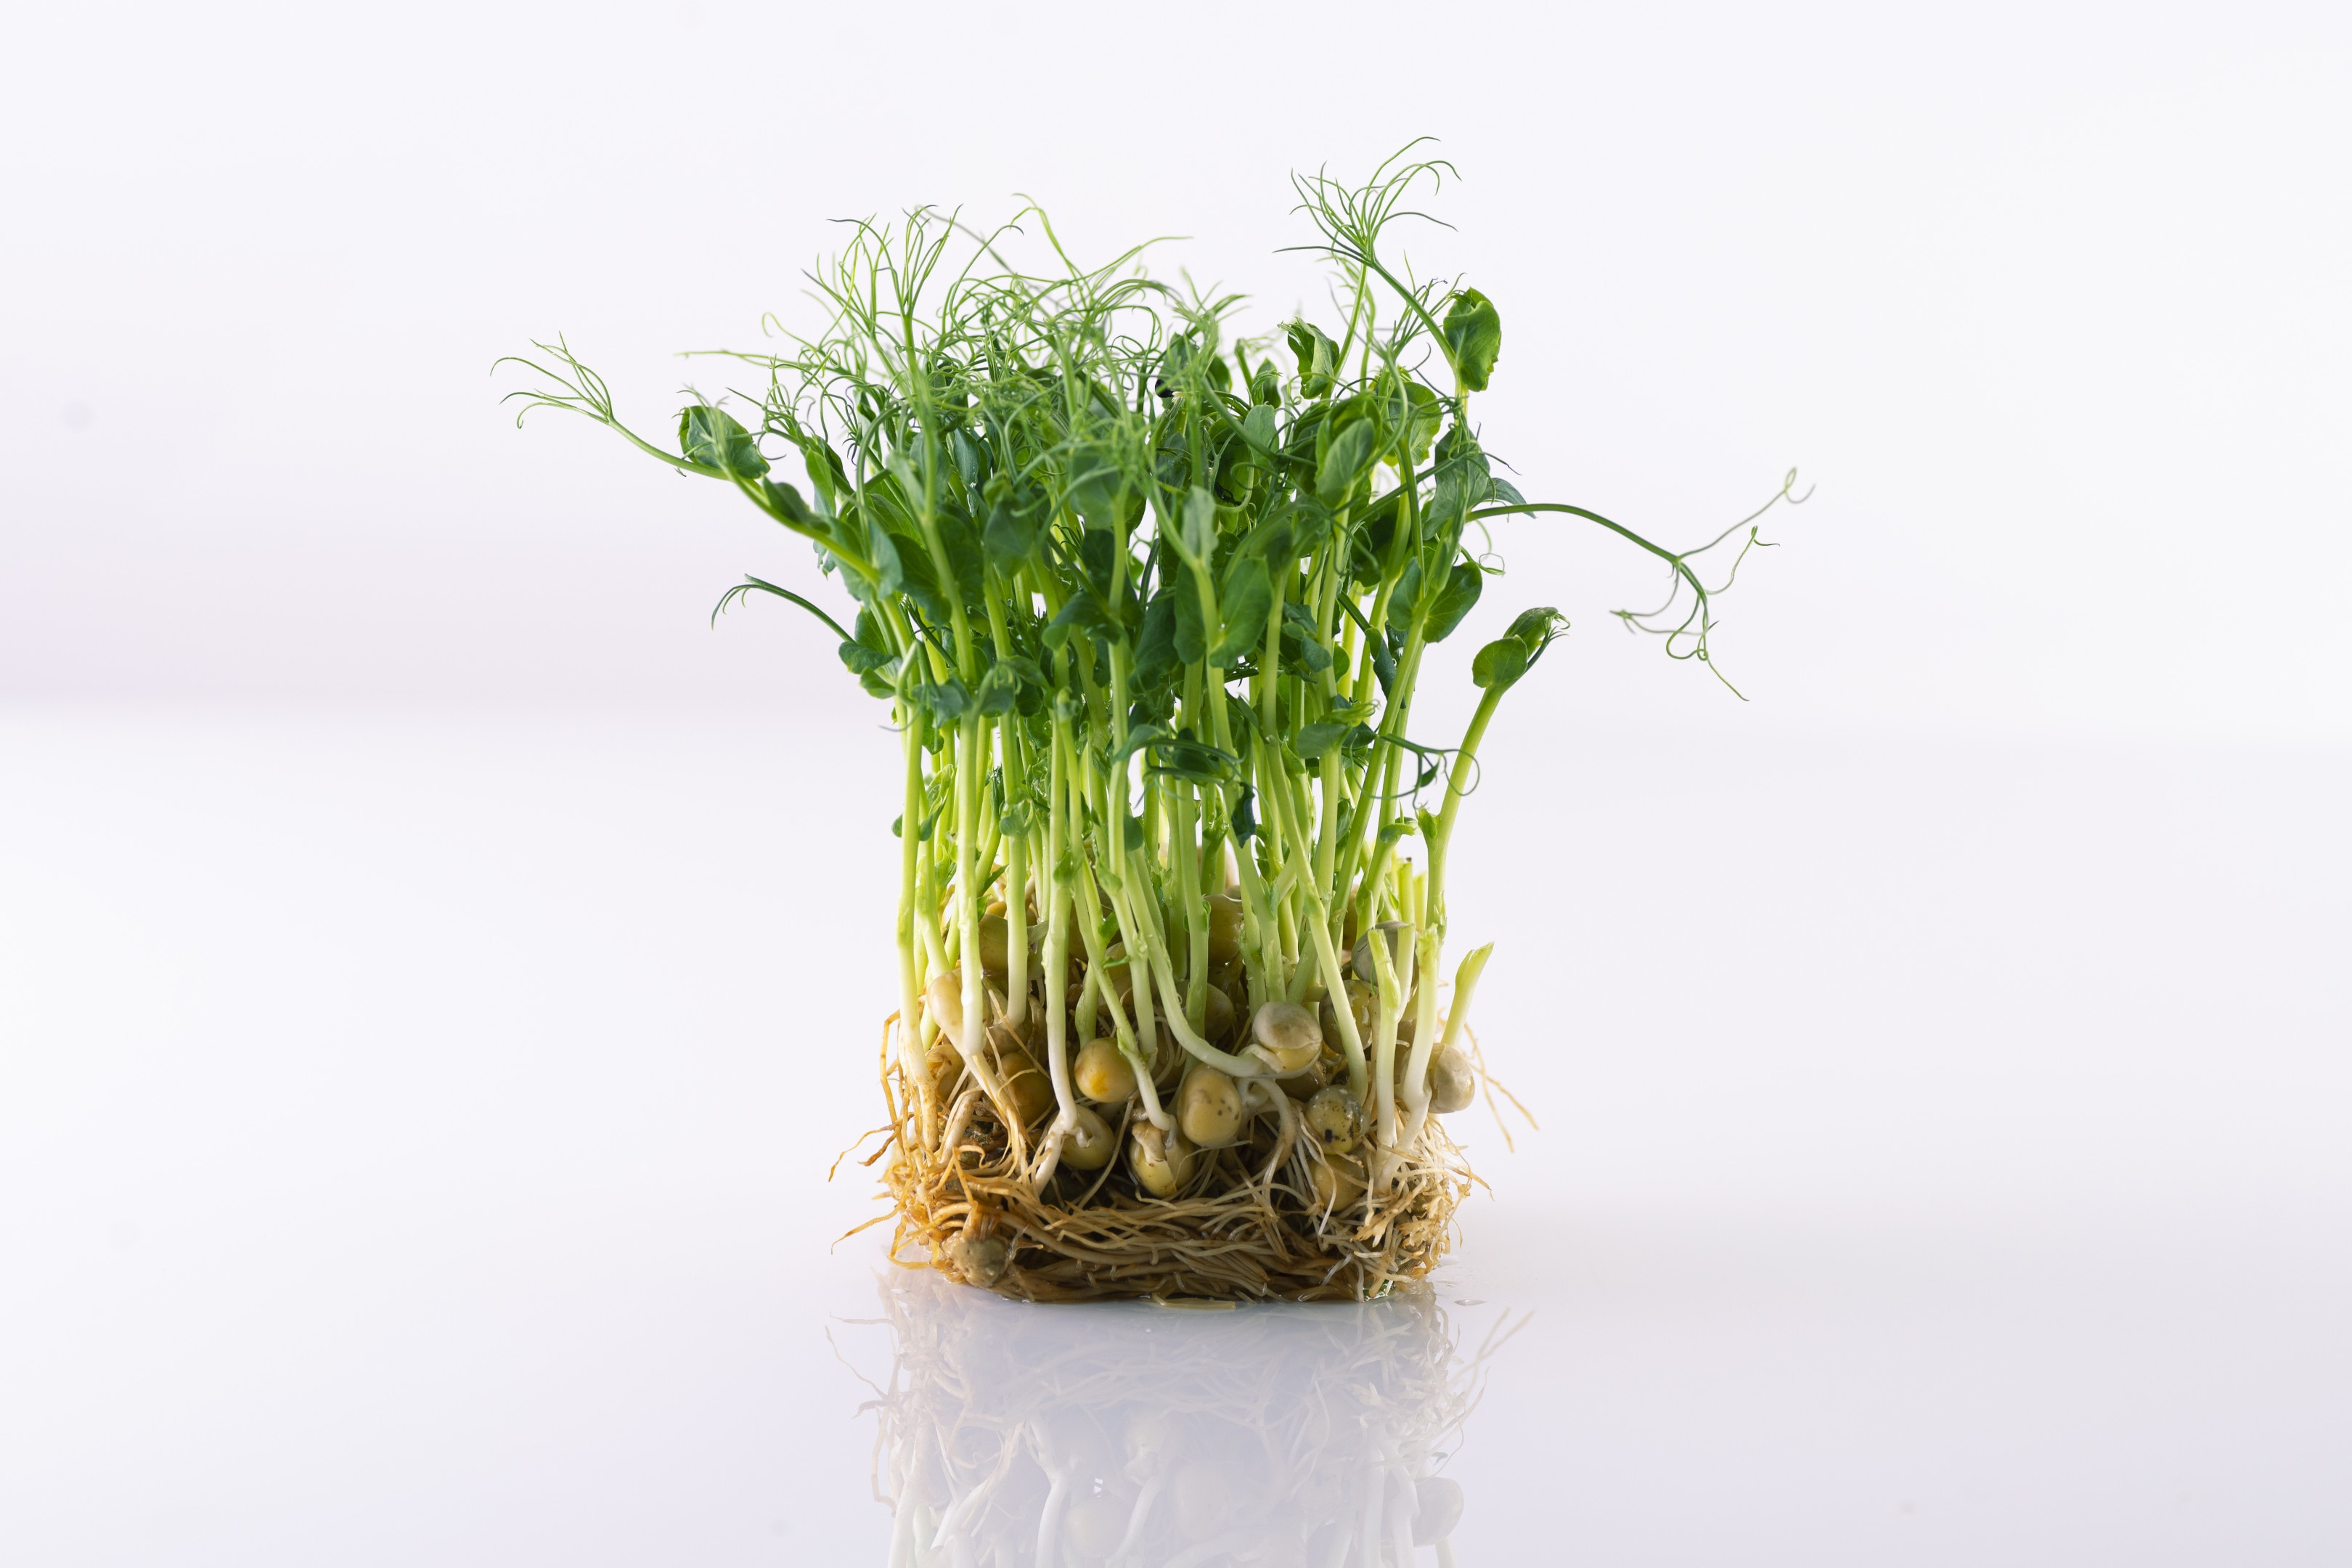 Pea shoots on white surface micro greens growing